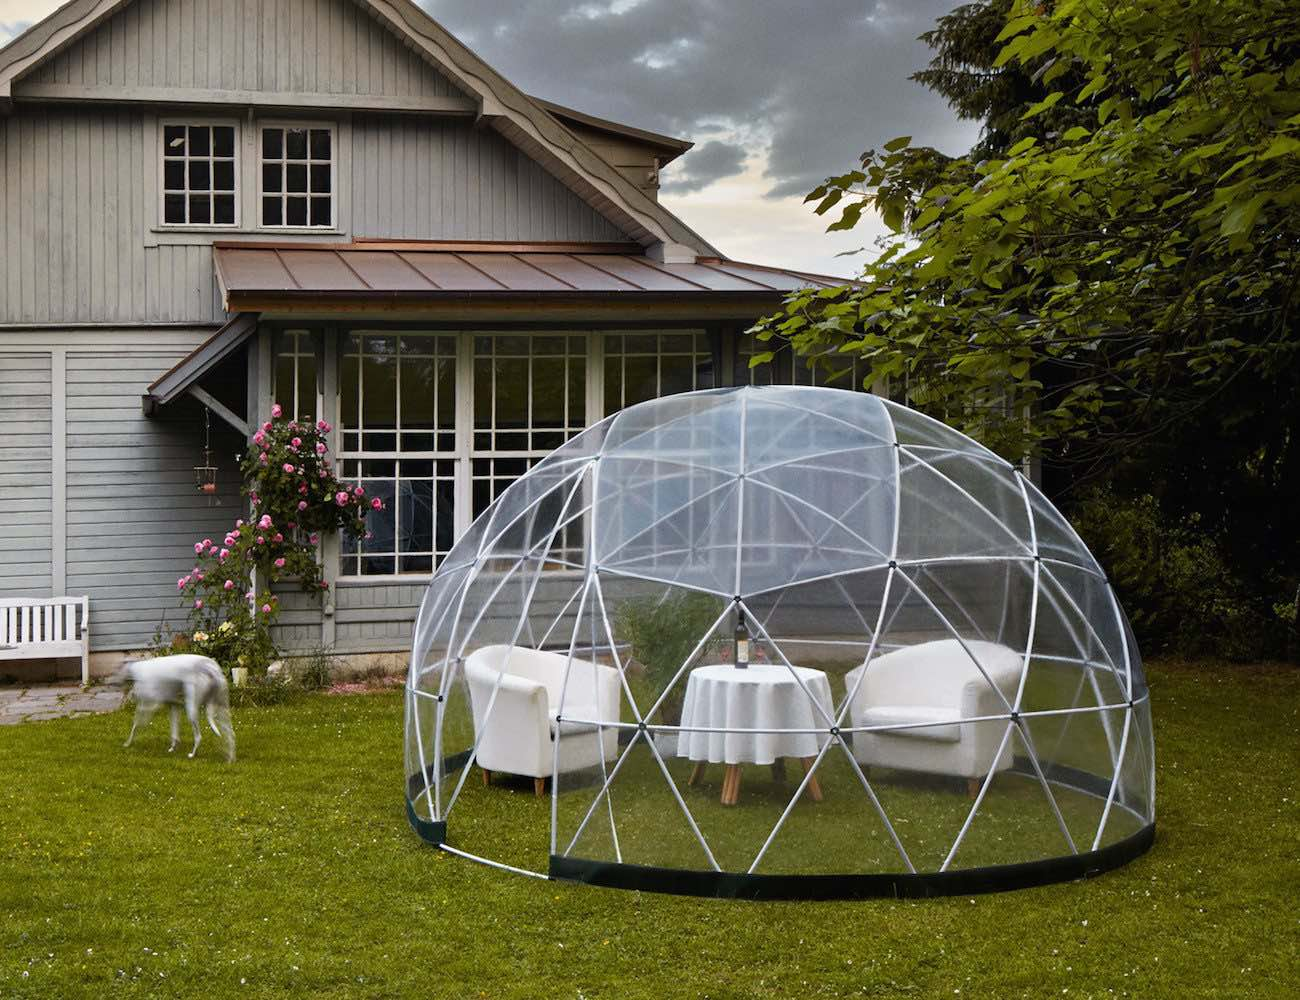 Salon De Jardin Aluminium Amazon Garden Igloo - Outdoor Living Space For Your Garden